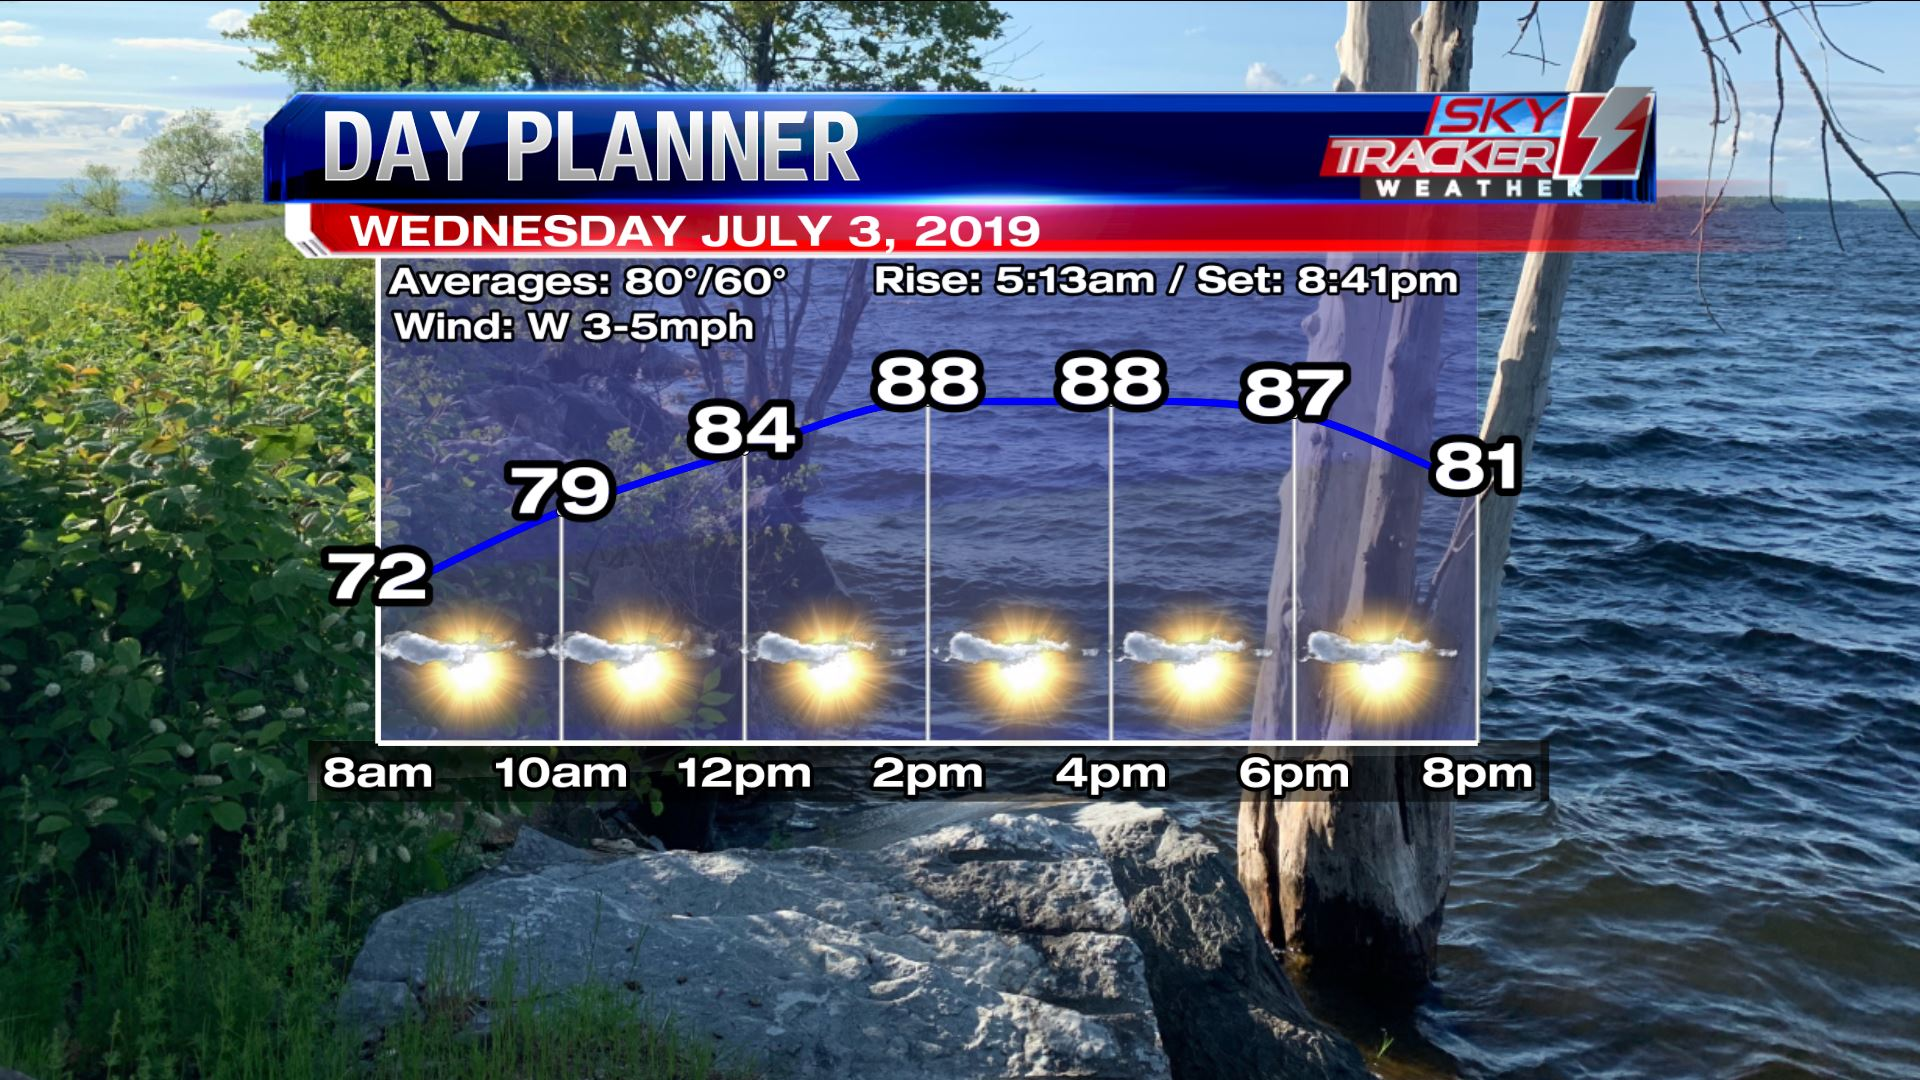 Planner for Wednesday July 3 2019